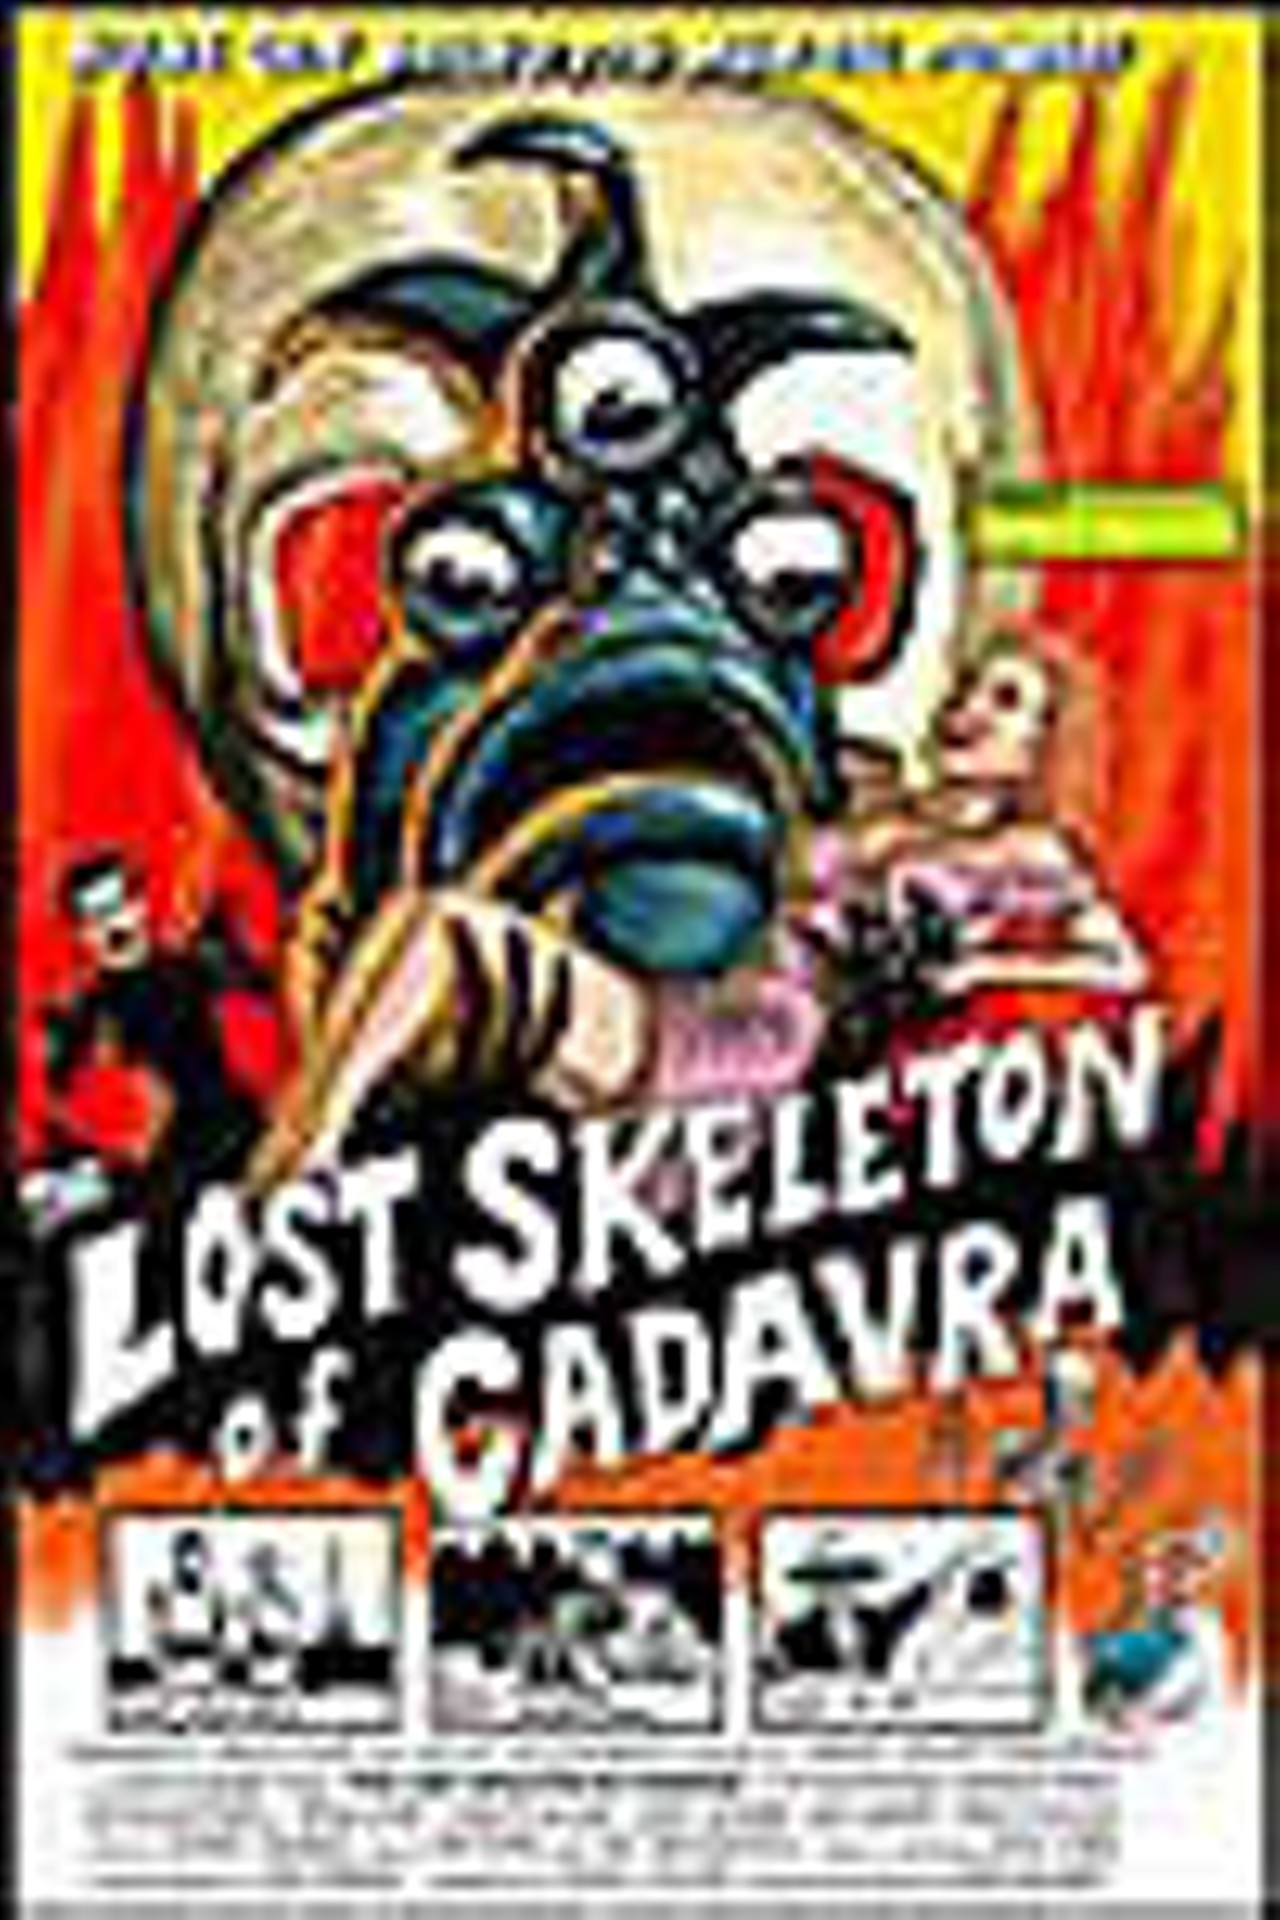 The Lost Skeleton of Cadavra | East Bay Express